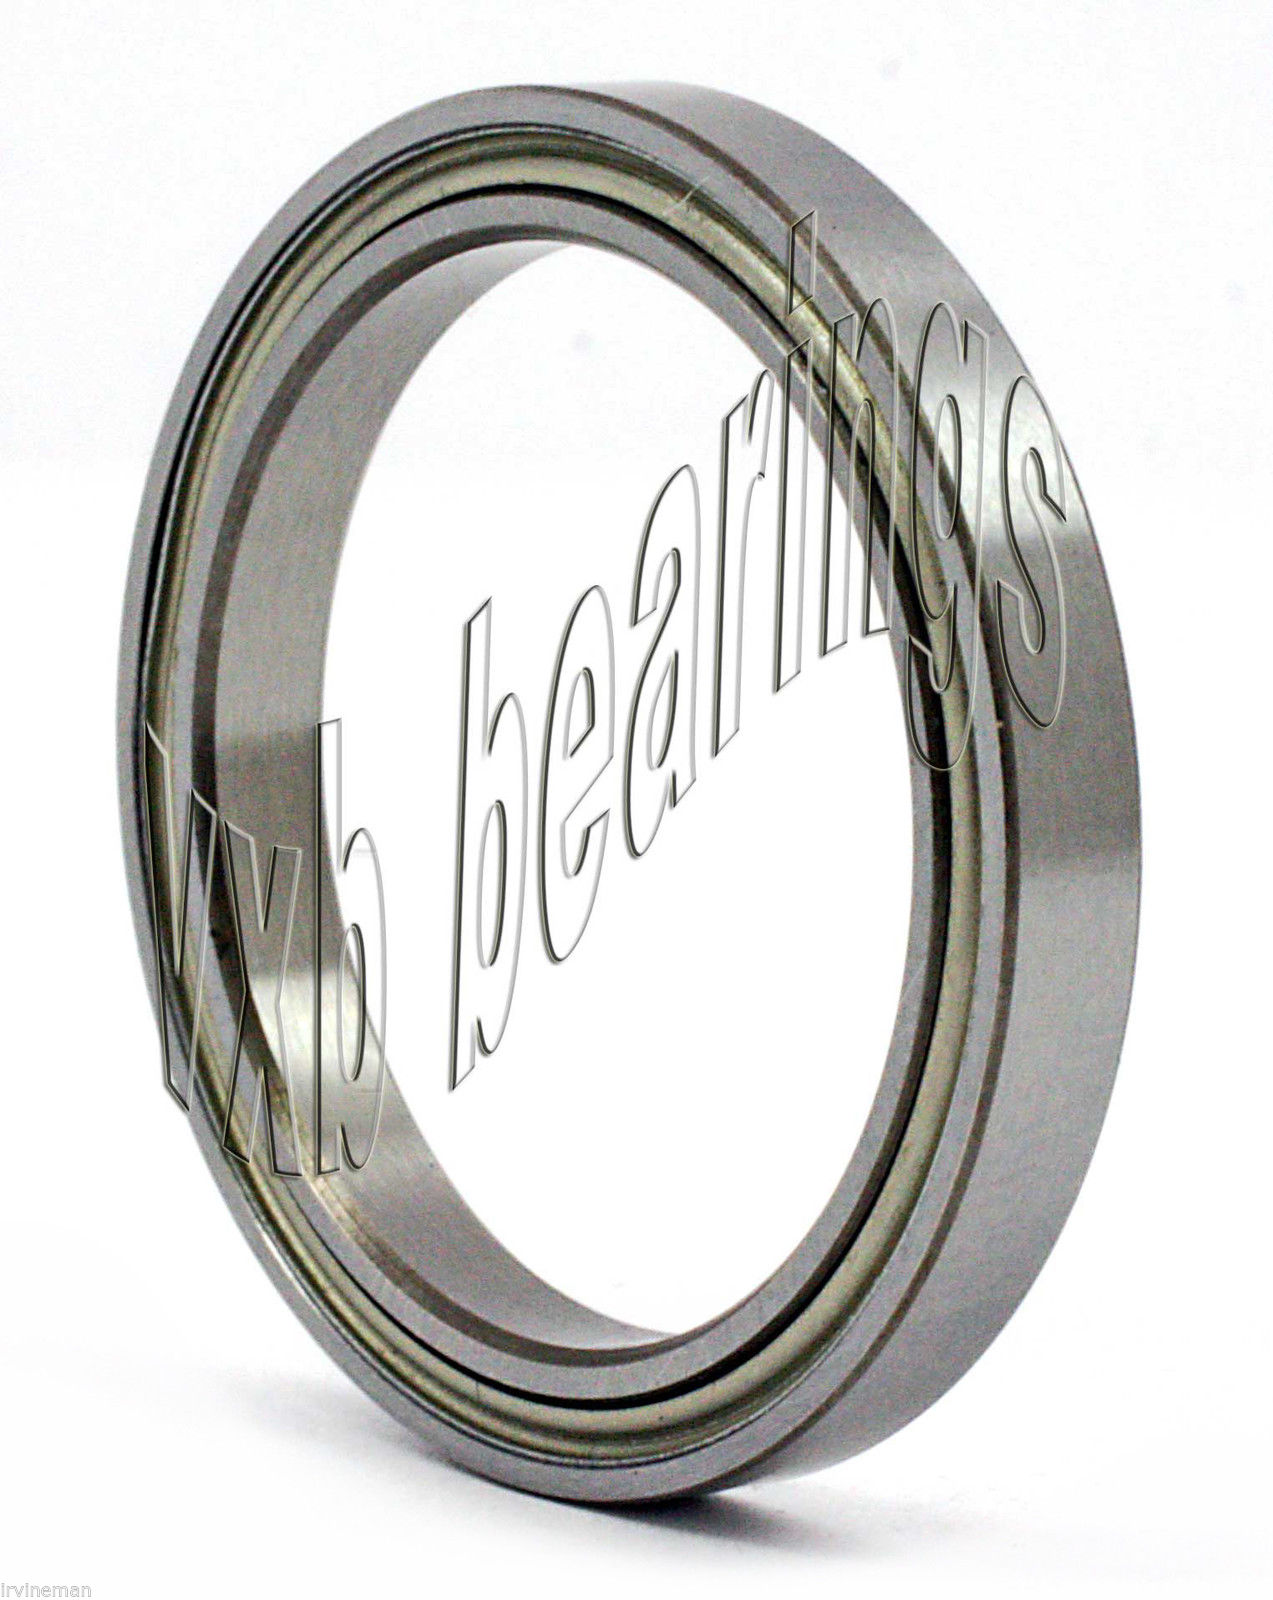 high temperature 6700 ZZ Z 2Z Ball Bearing 10mm Ceramic Stainless ABEC-5